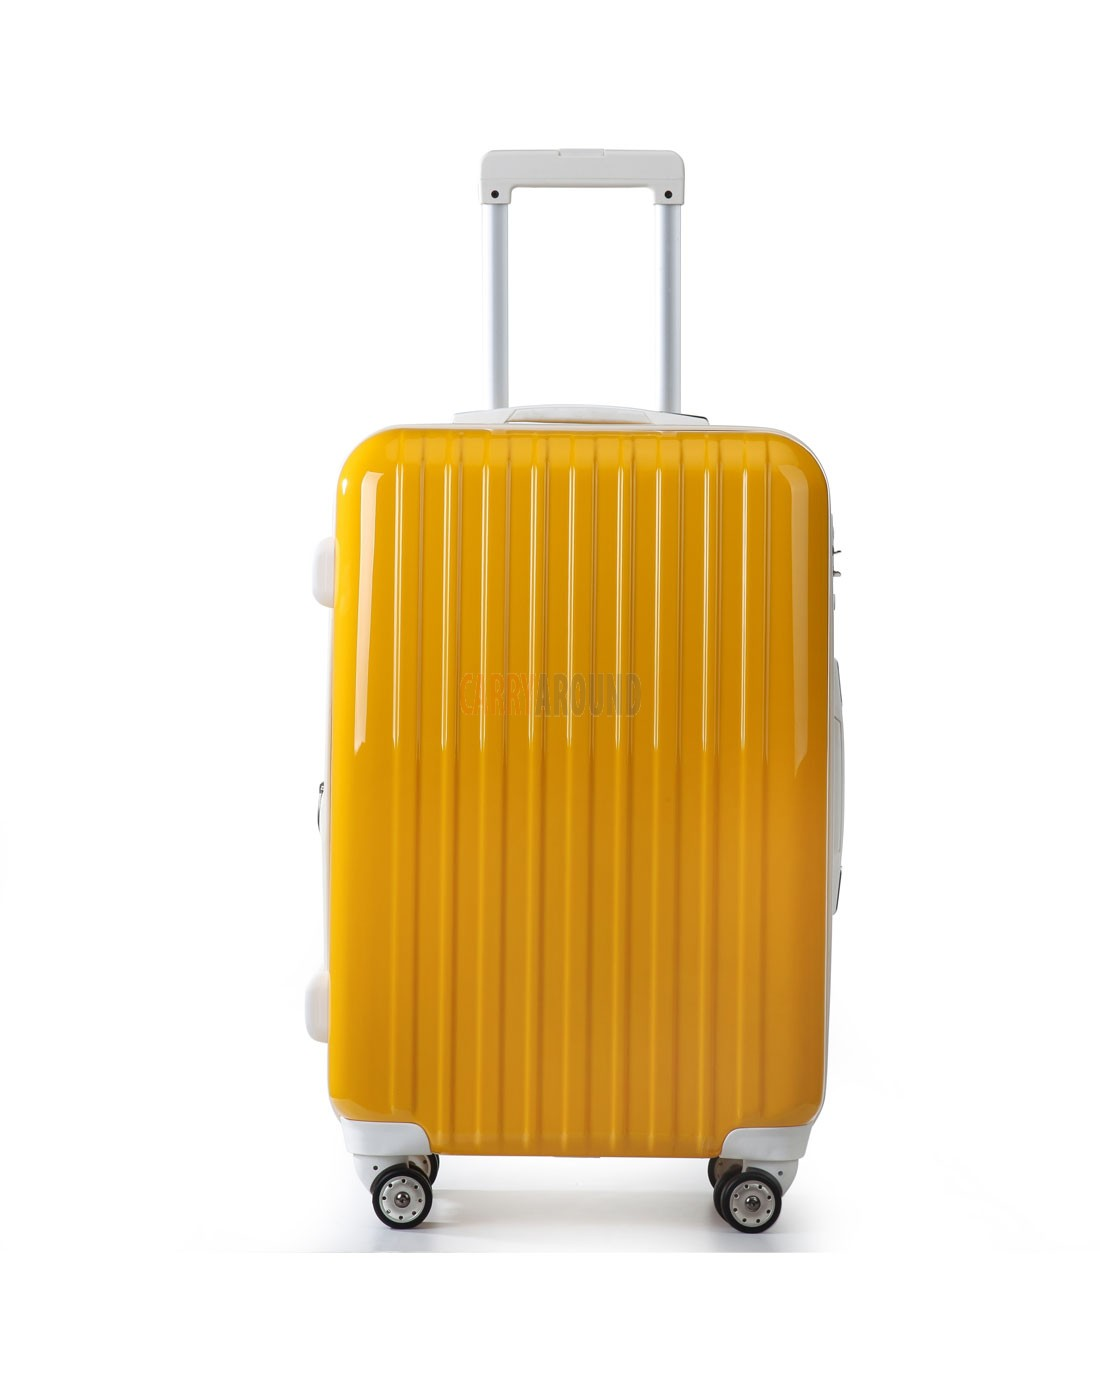 """AIRCROSS 2PC Set Luggage A55 Yellow Hard Case Expandable Trolley Luggage - 20""""26"""""""